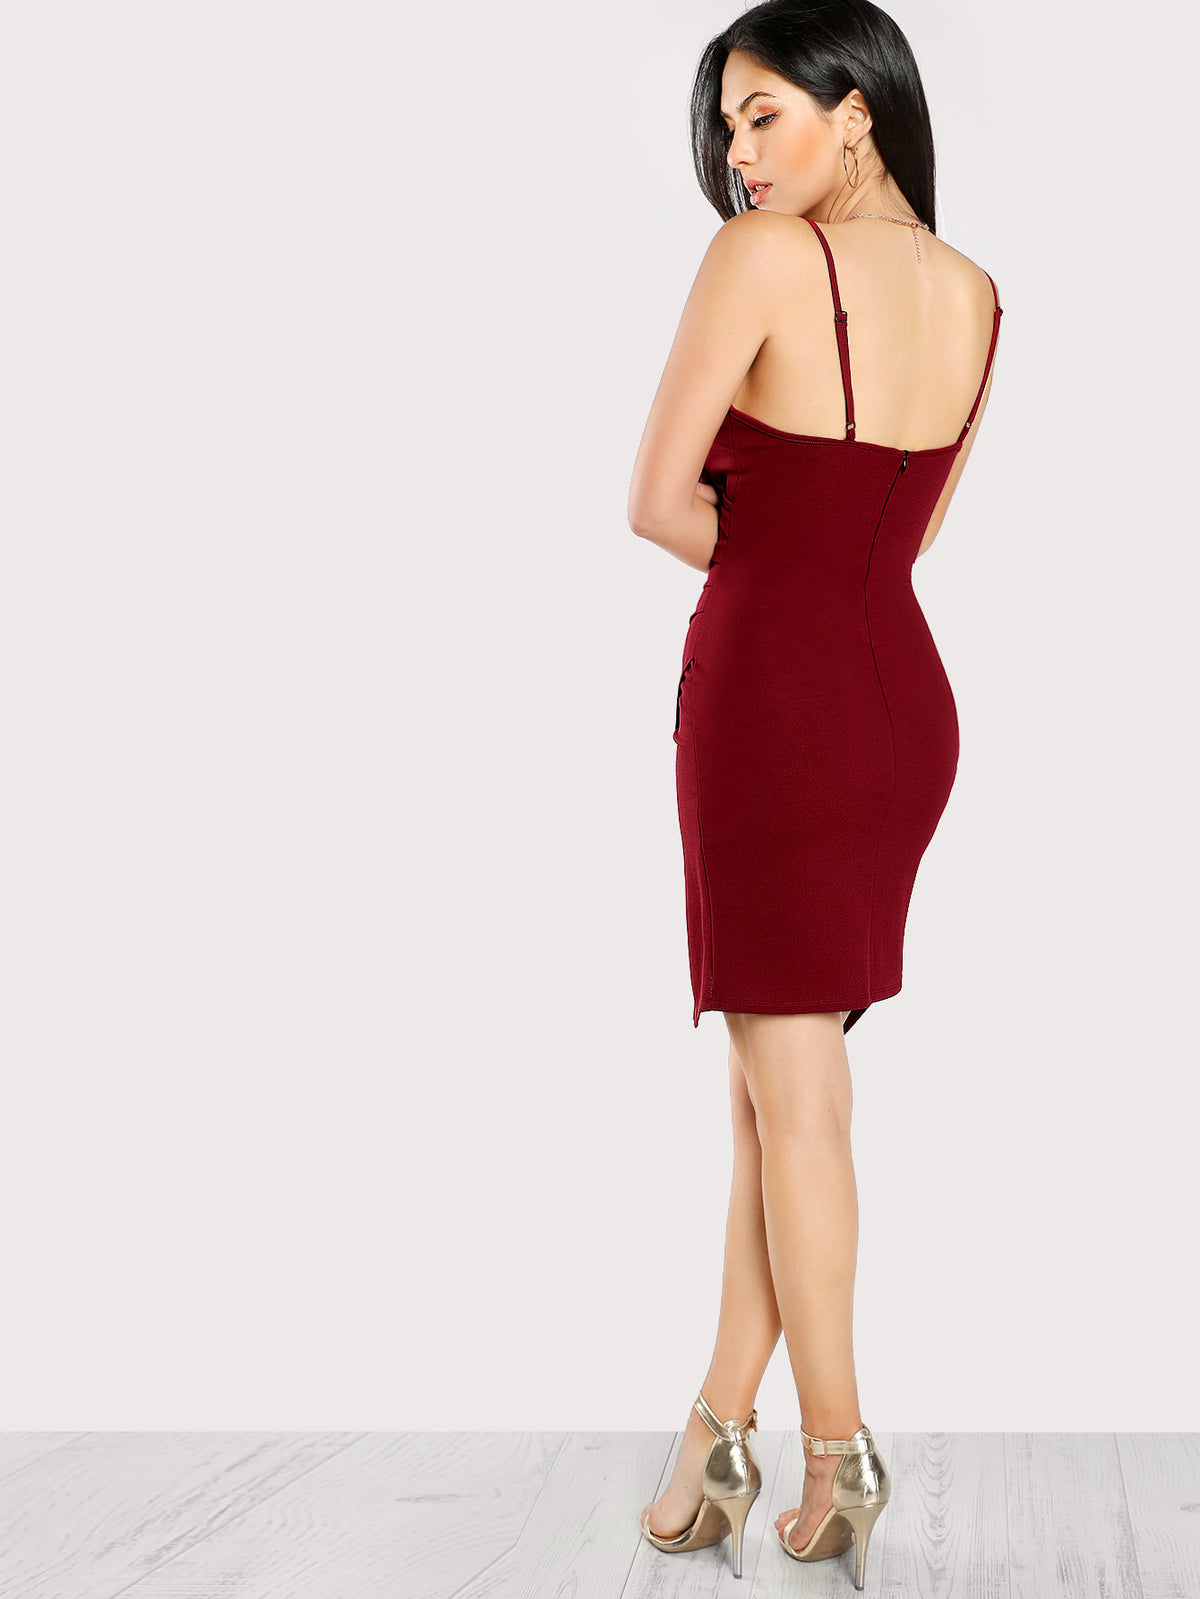 Ruched Overlap Form Fitting Cami Dress